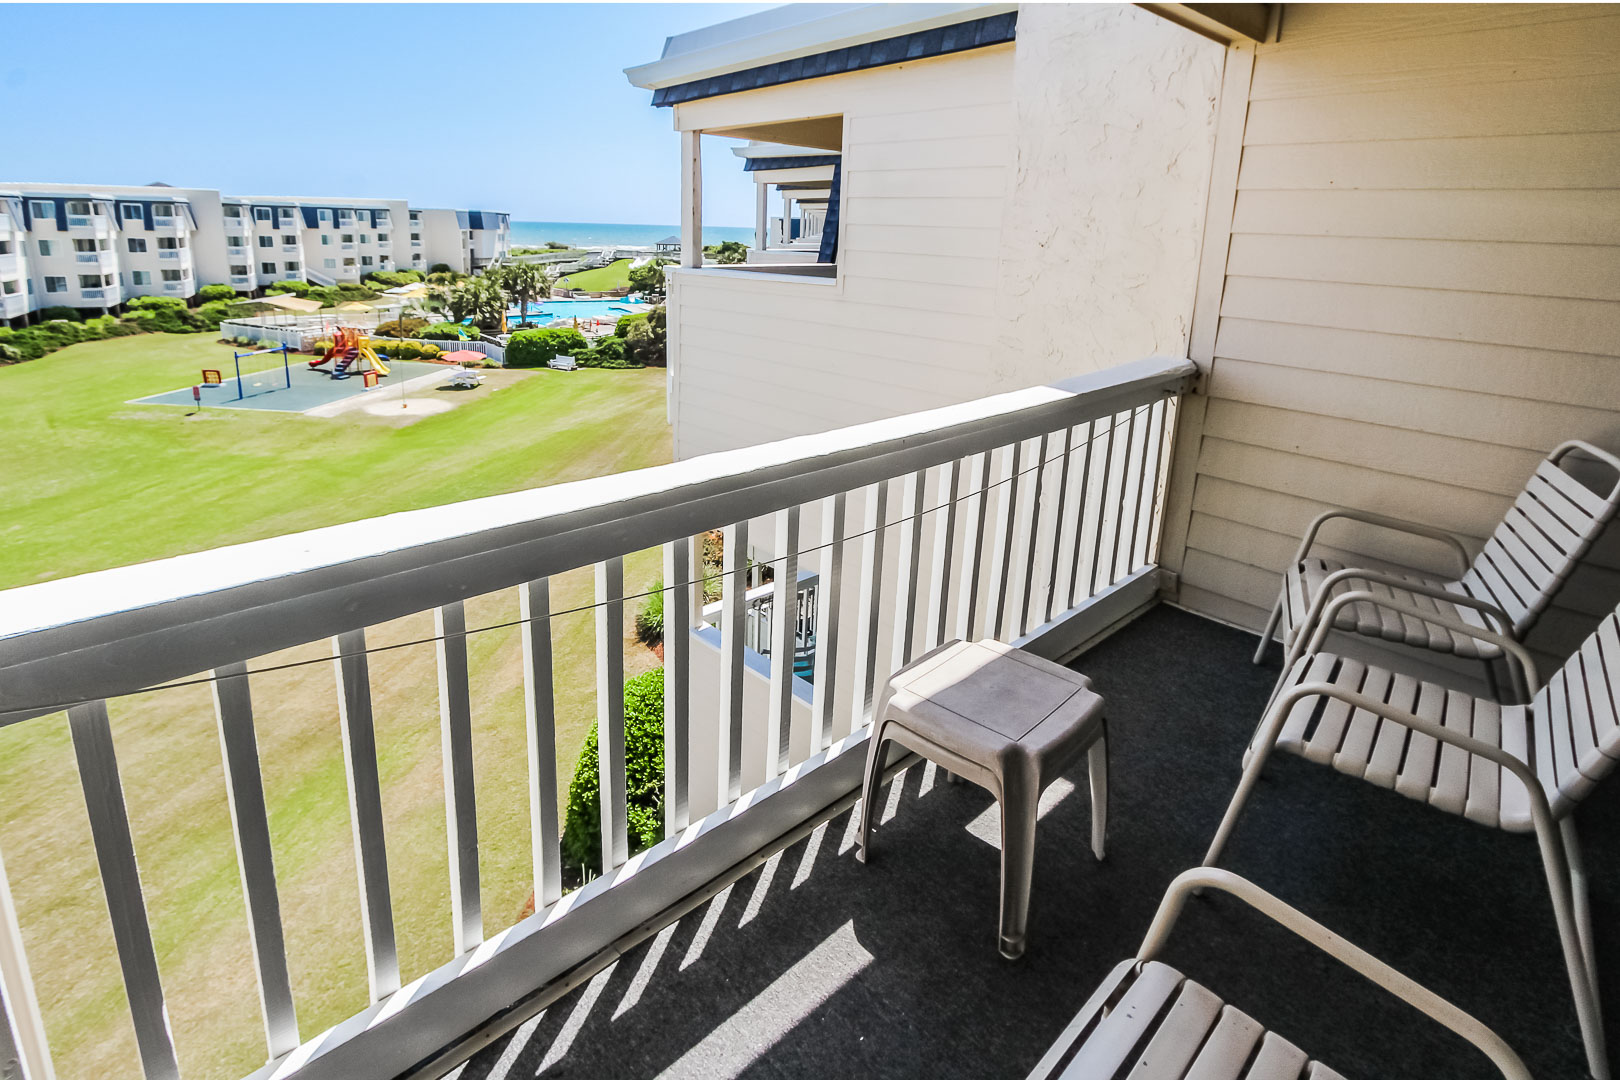 A pleasant resort view from the balcony at VRI's A Place at the Beach III in North Carolina